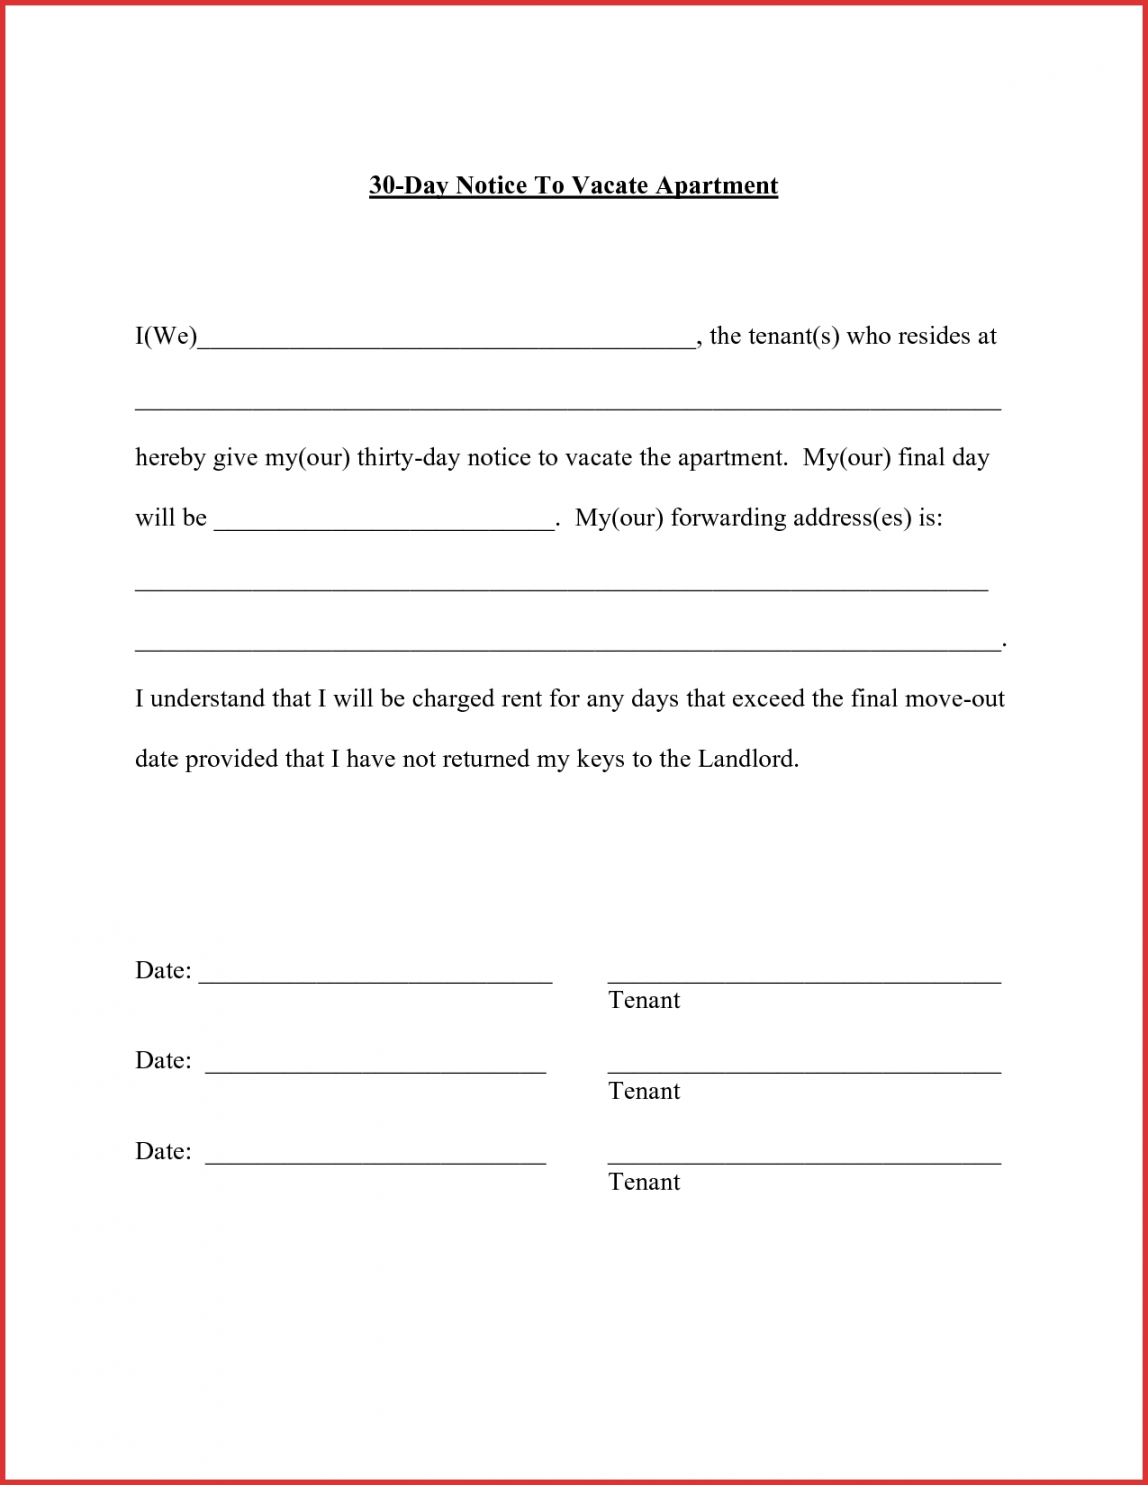 costume mail letter format apartment resume templates landlord 30 day notice for landlord template sample